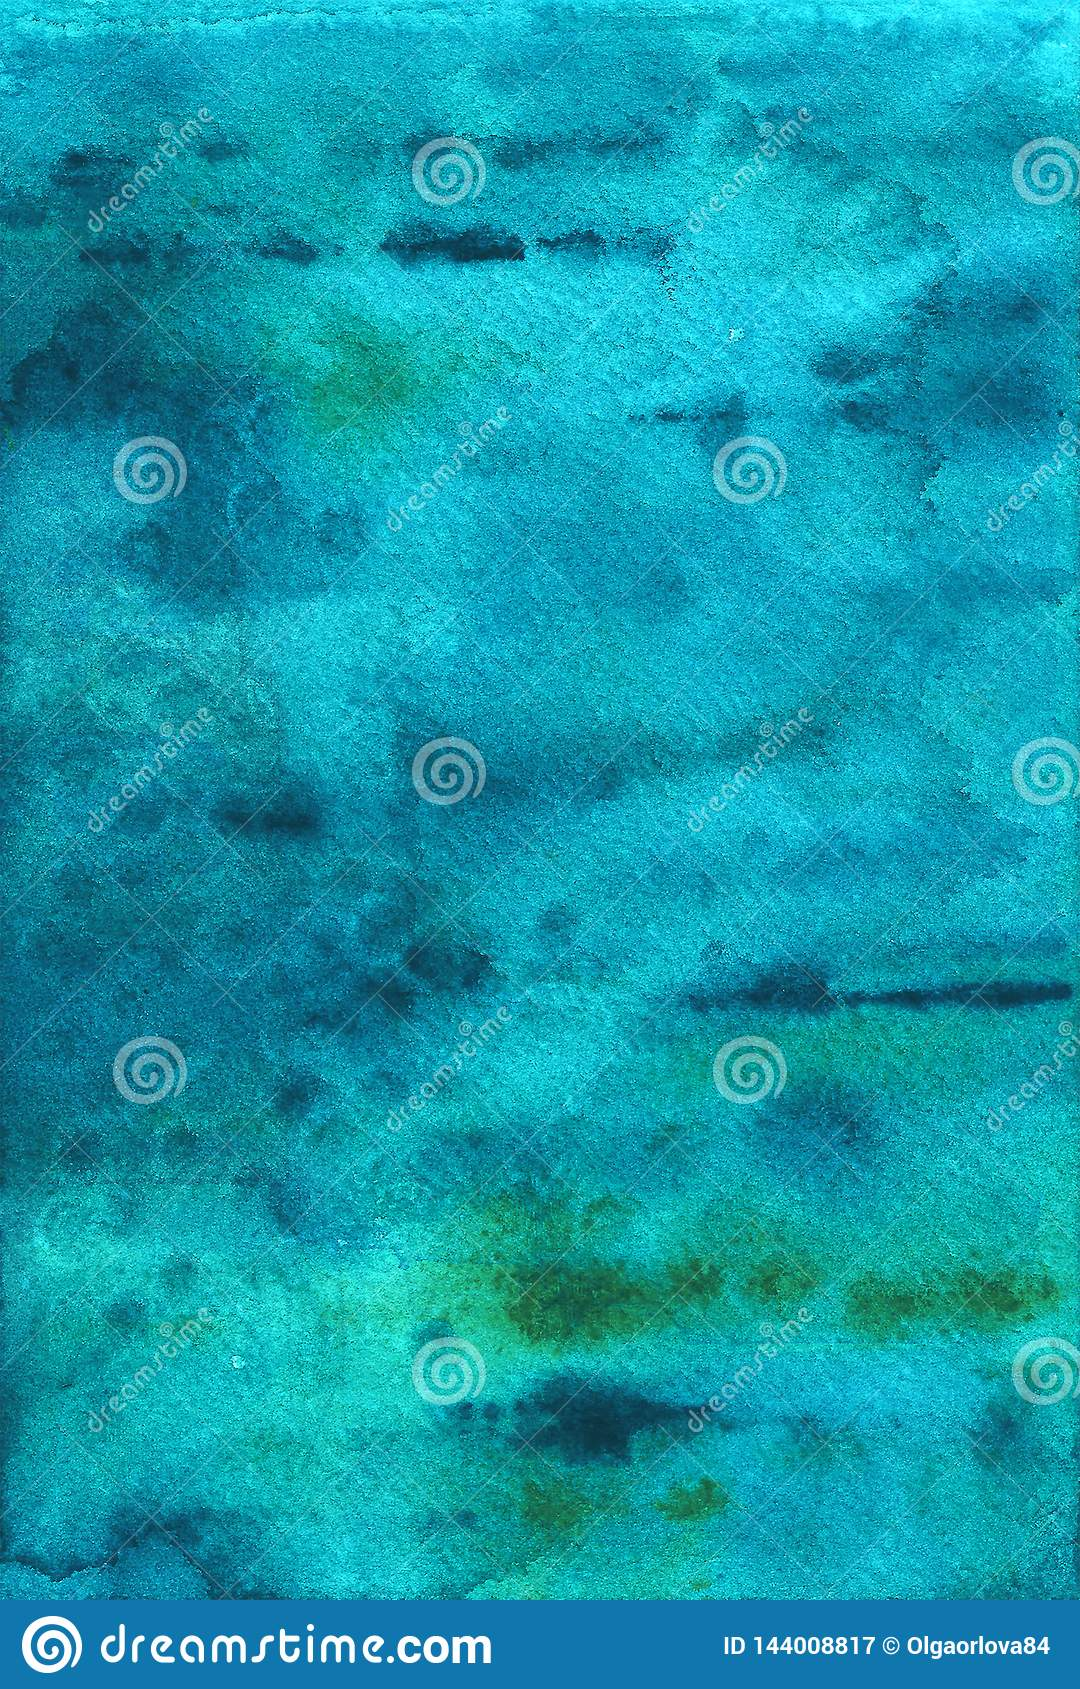 Blue watercolor background. Marine texture, turquoise.